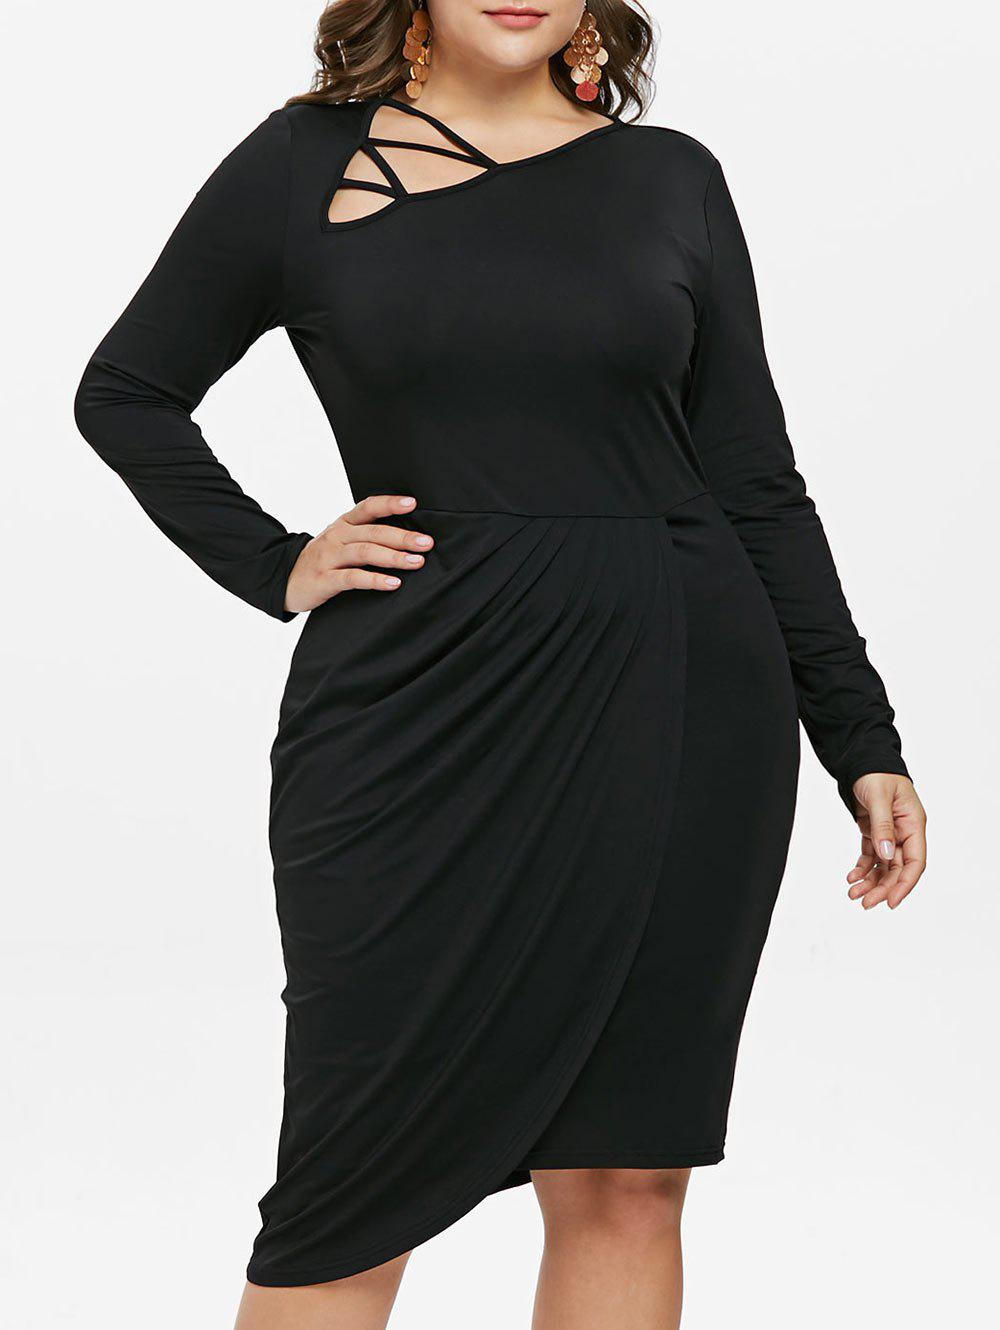 b5cbc9d952a 2019 Plus Size Skew Collar Overlap Dress